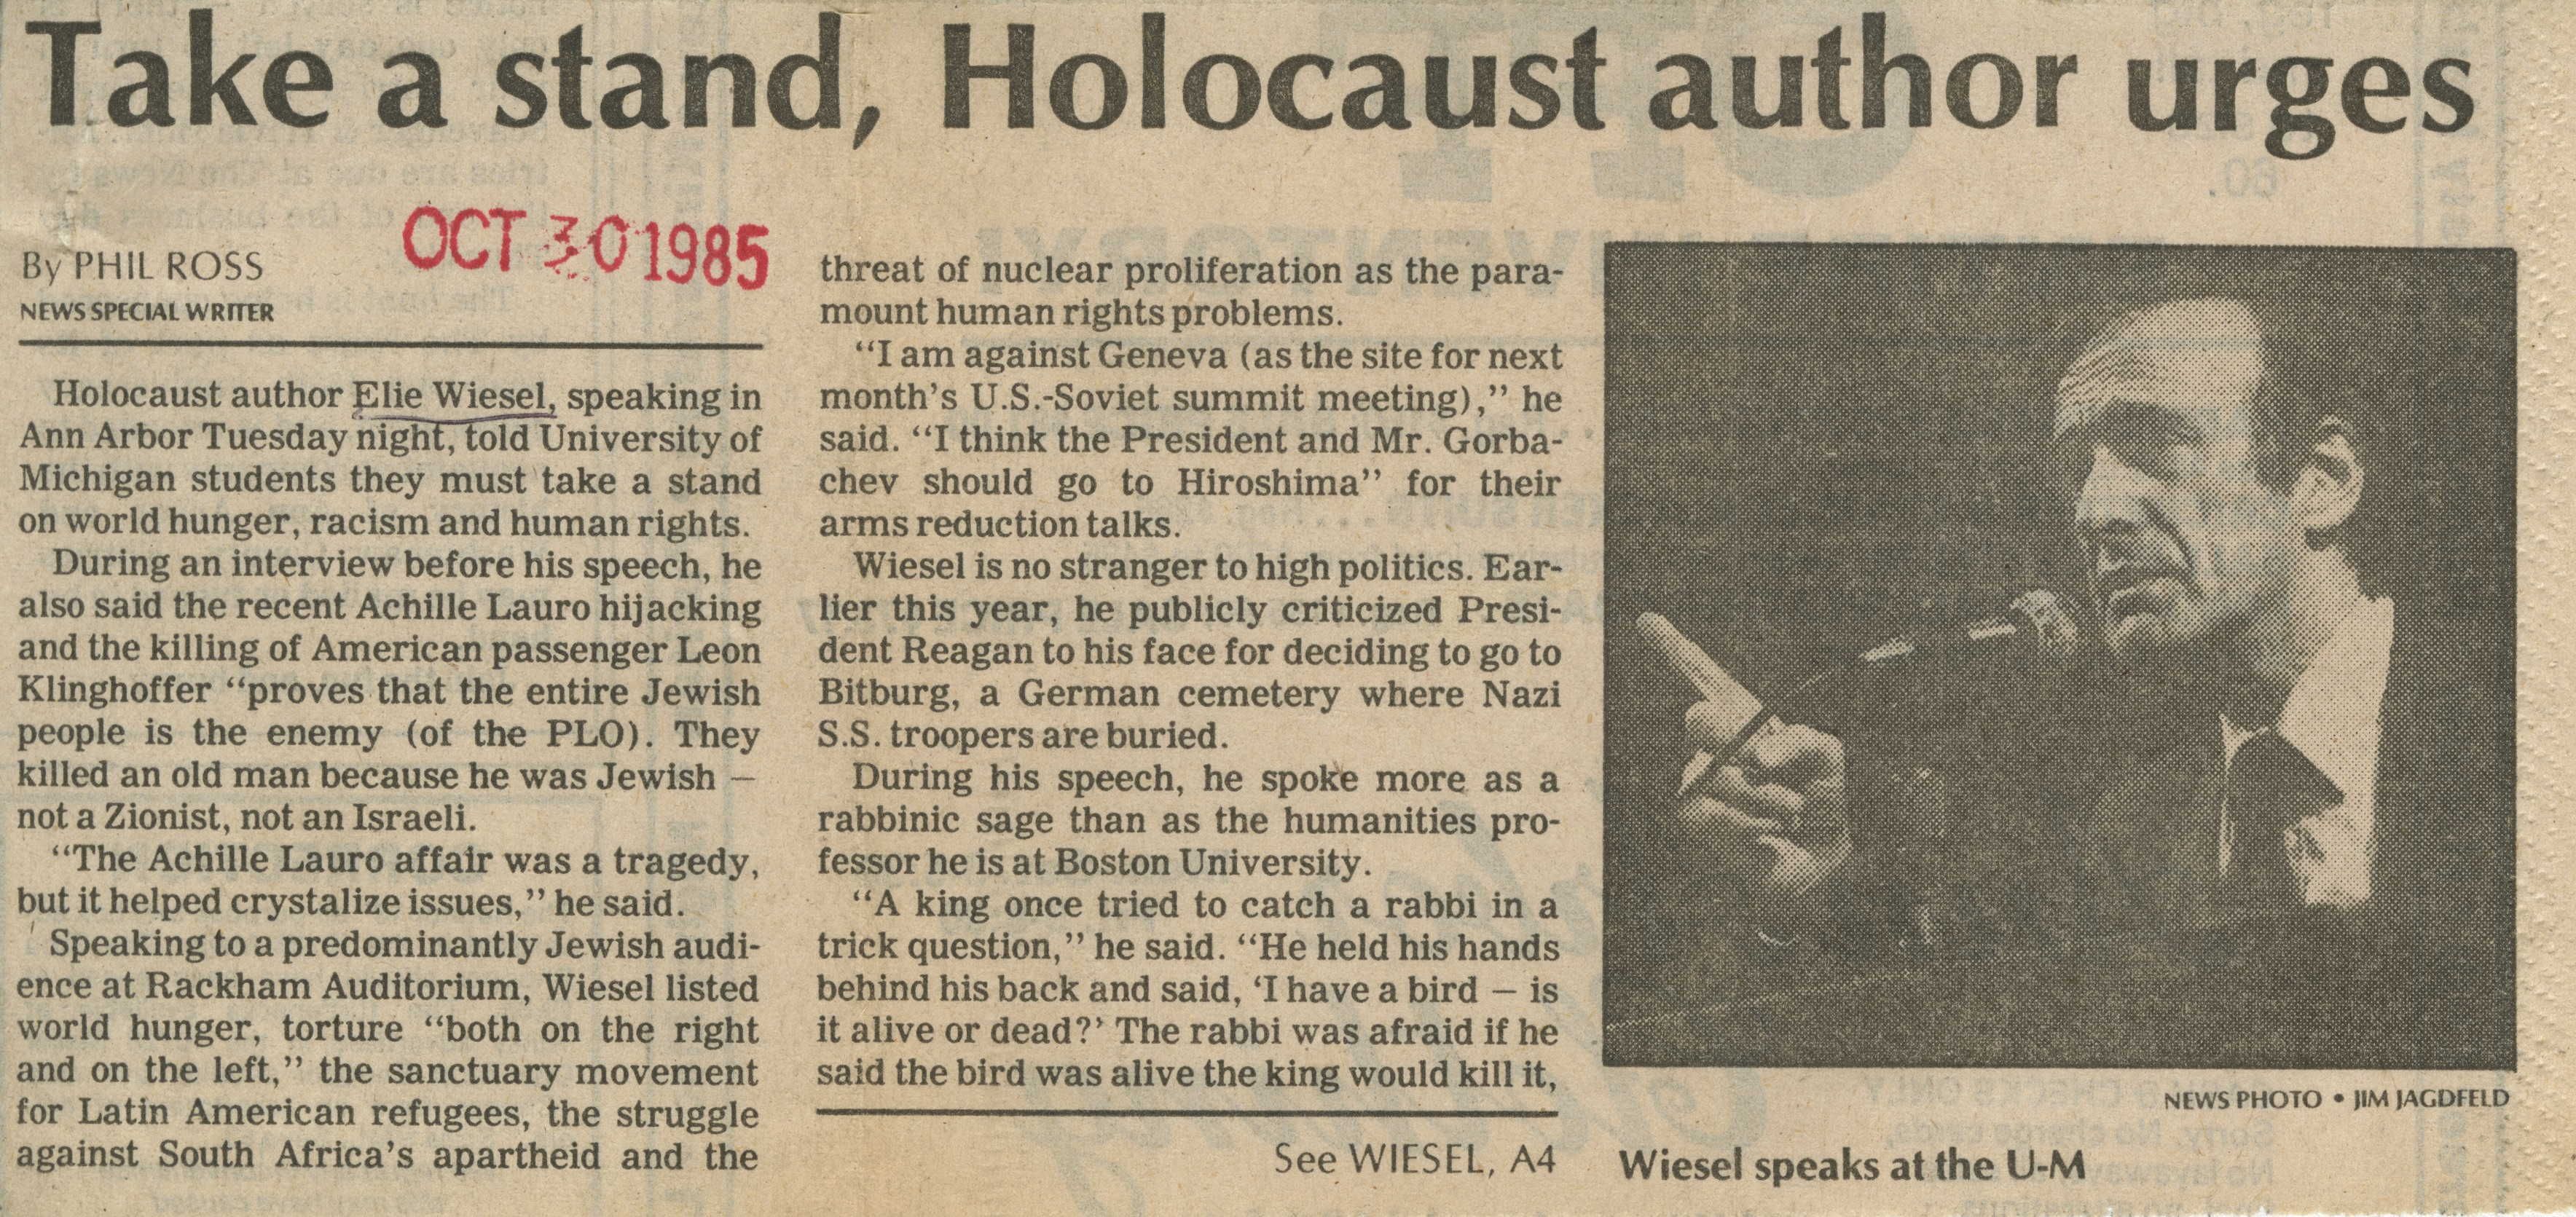 Take A Stand, Holocaust Author Urges image